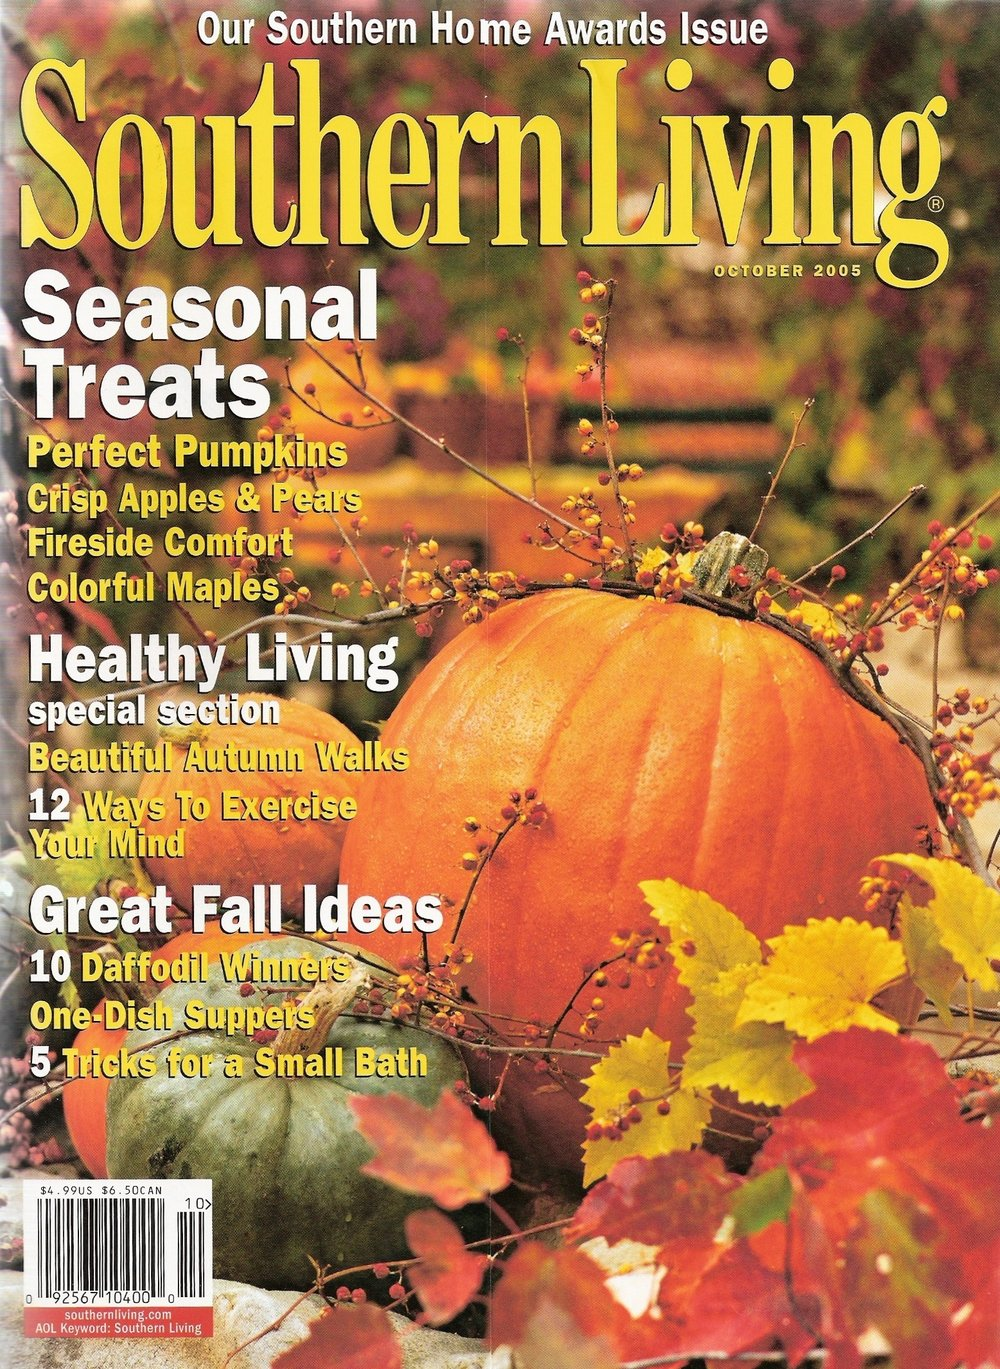 Home - Southern Living 2 Cover.jpg